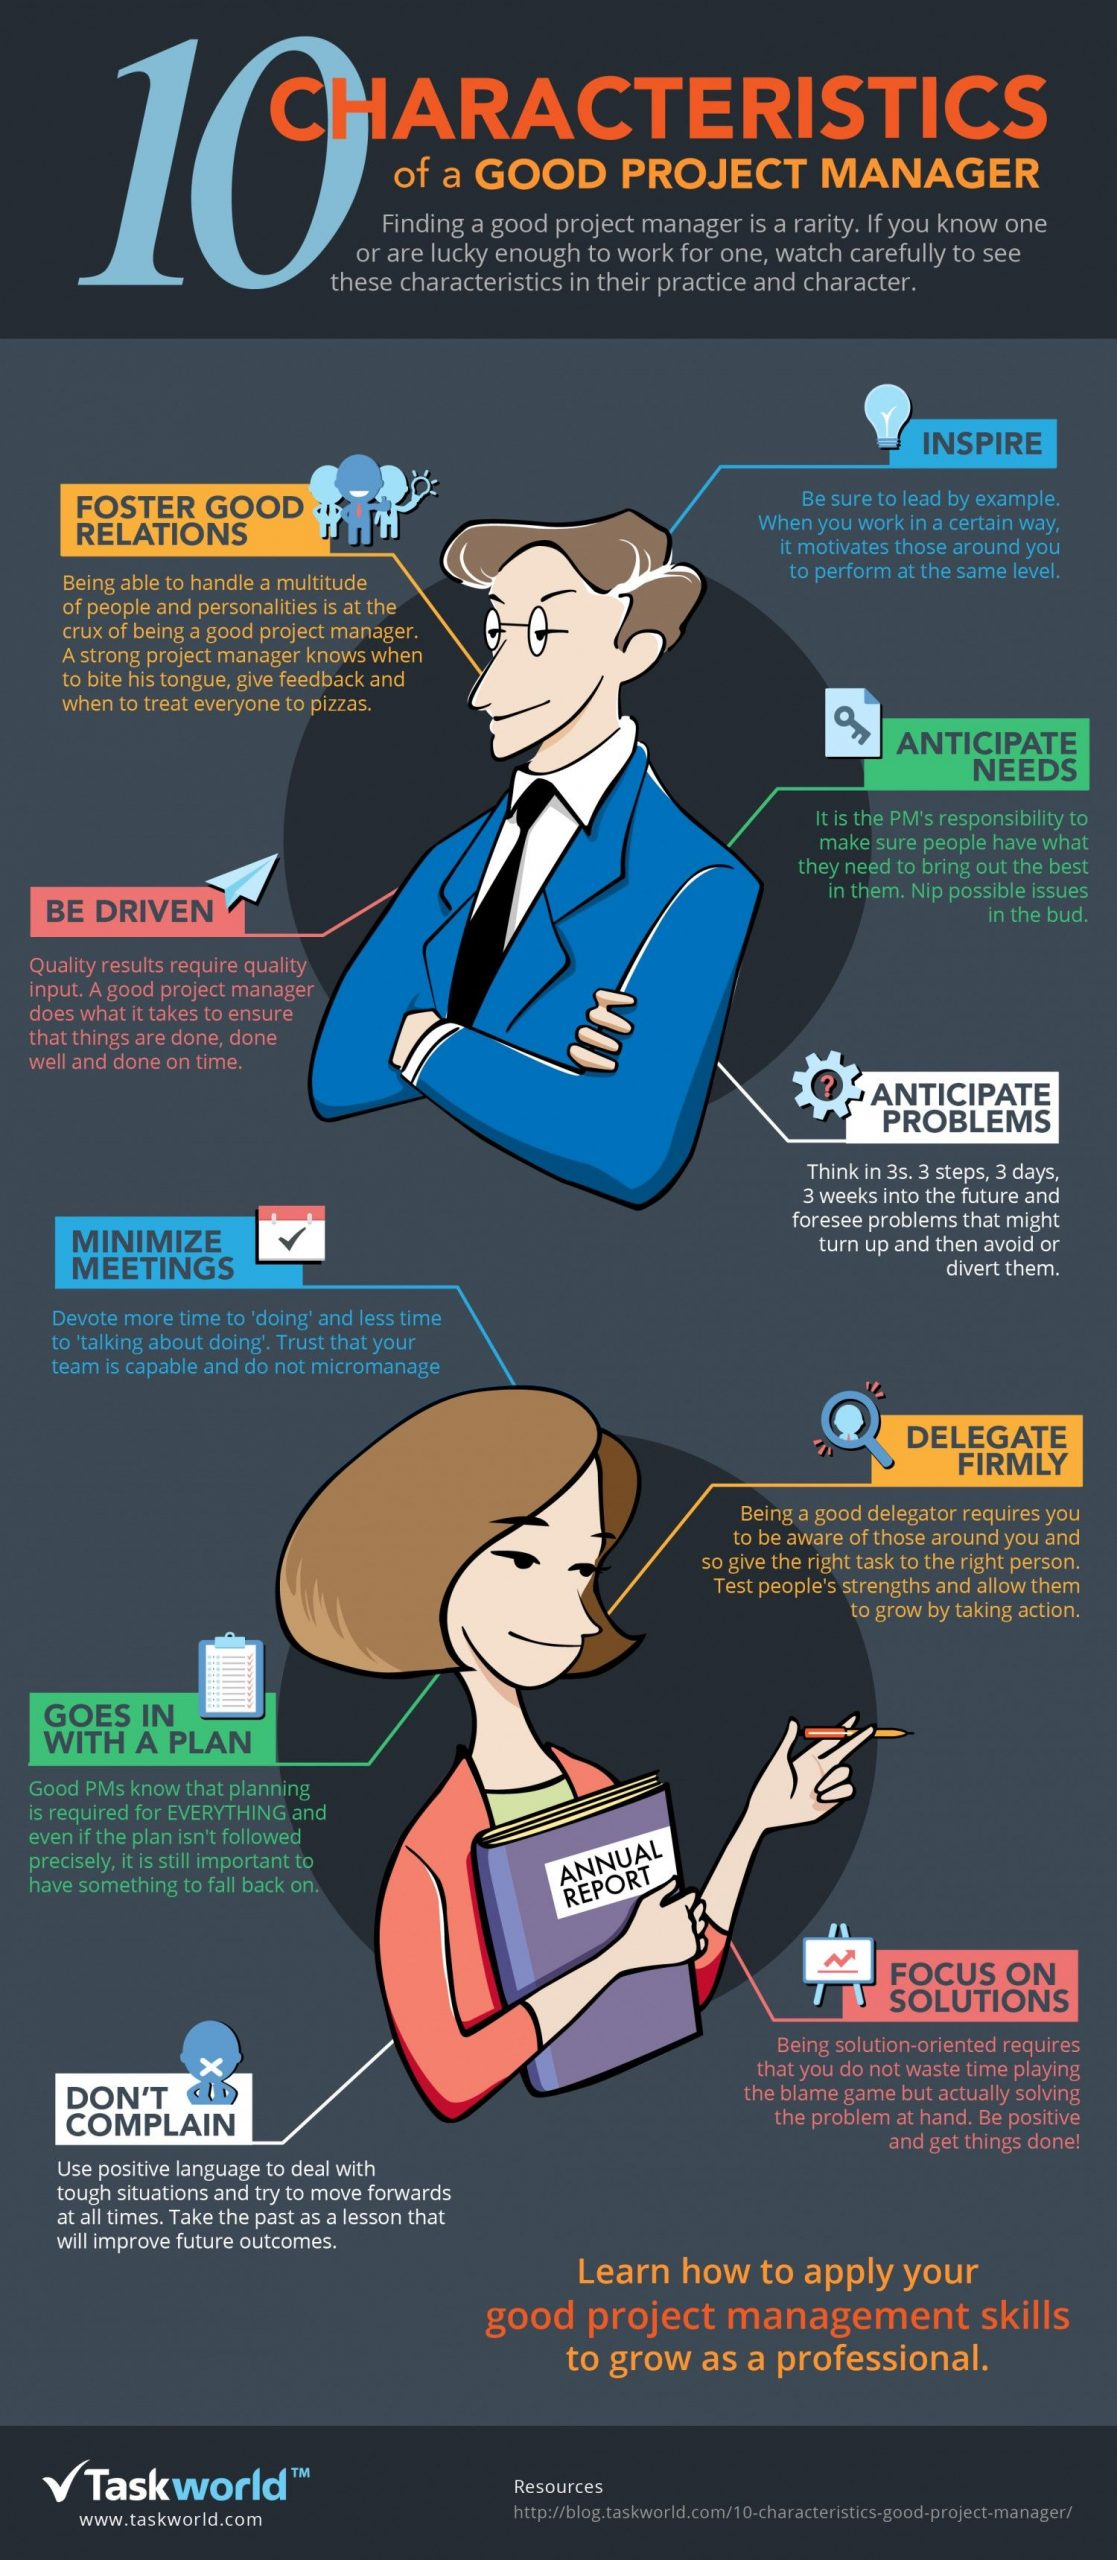 10 Characteristics of a good project manager